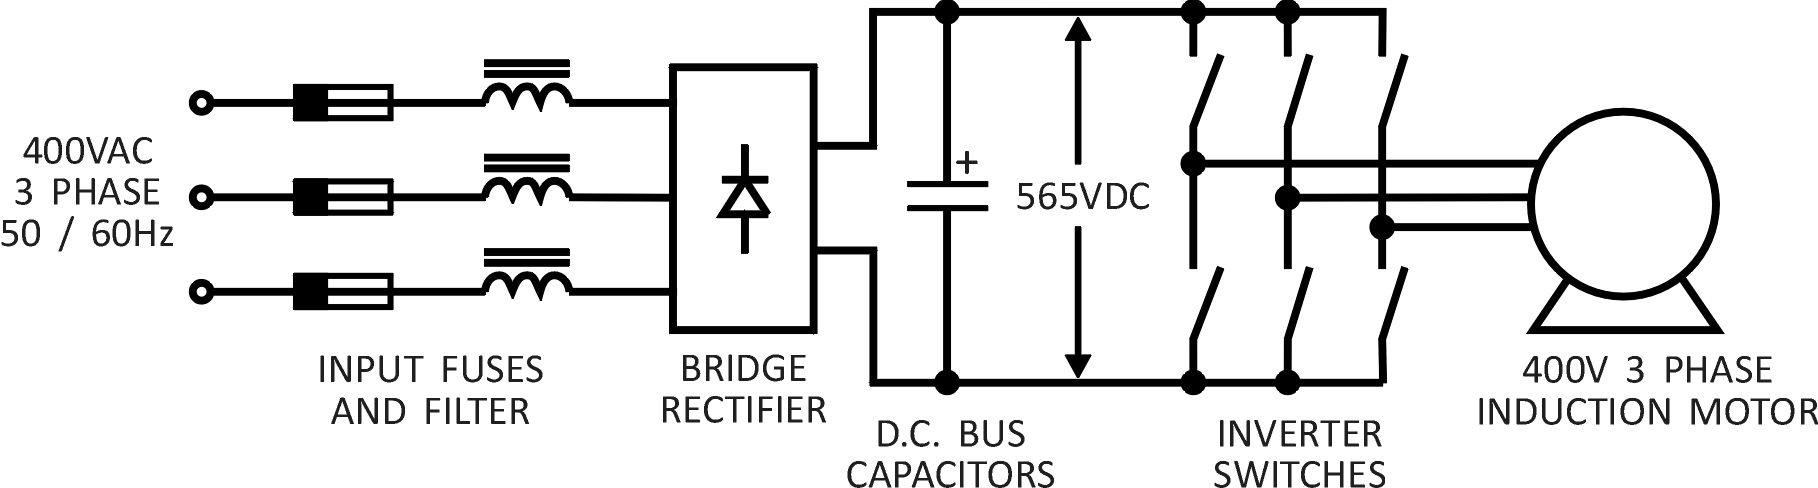 What Is The Difference Between A Soft Starter And Vfd Quora Phase Invert Switch Electronic Design Rectification Done With 3 Diode Bridge Rectifier Inversion Uses 6 Switches Usually Igbts